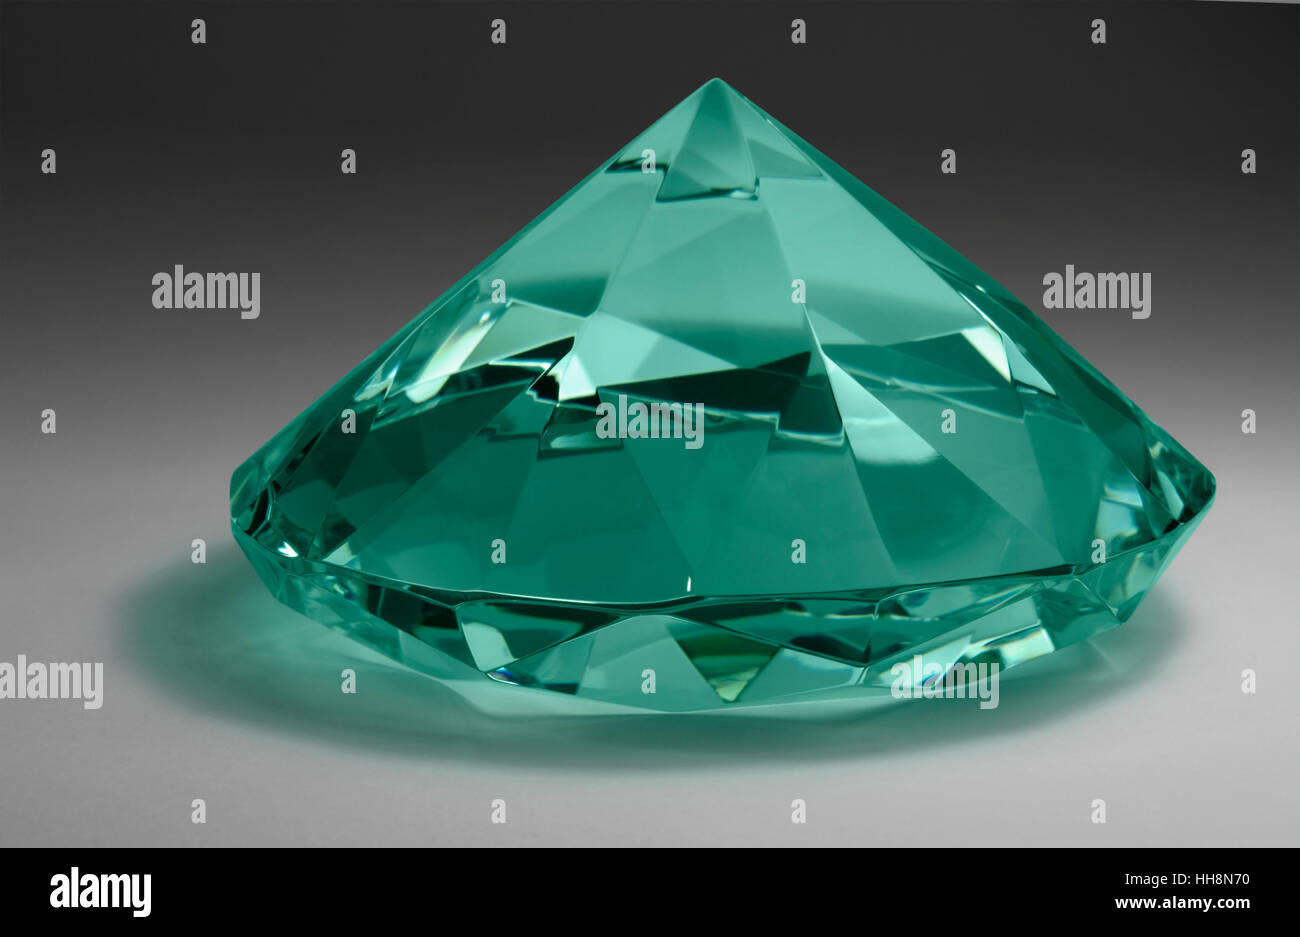 diamond photo shines jewel refraction facet stock shine light green lucent bright